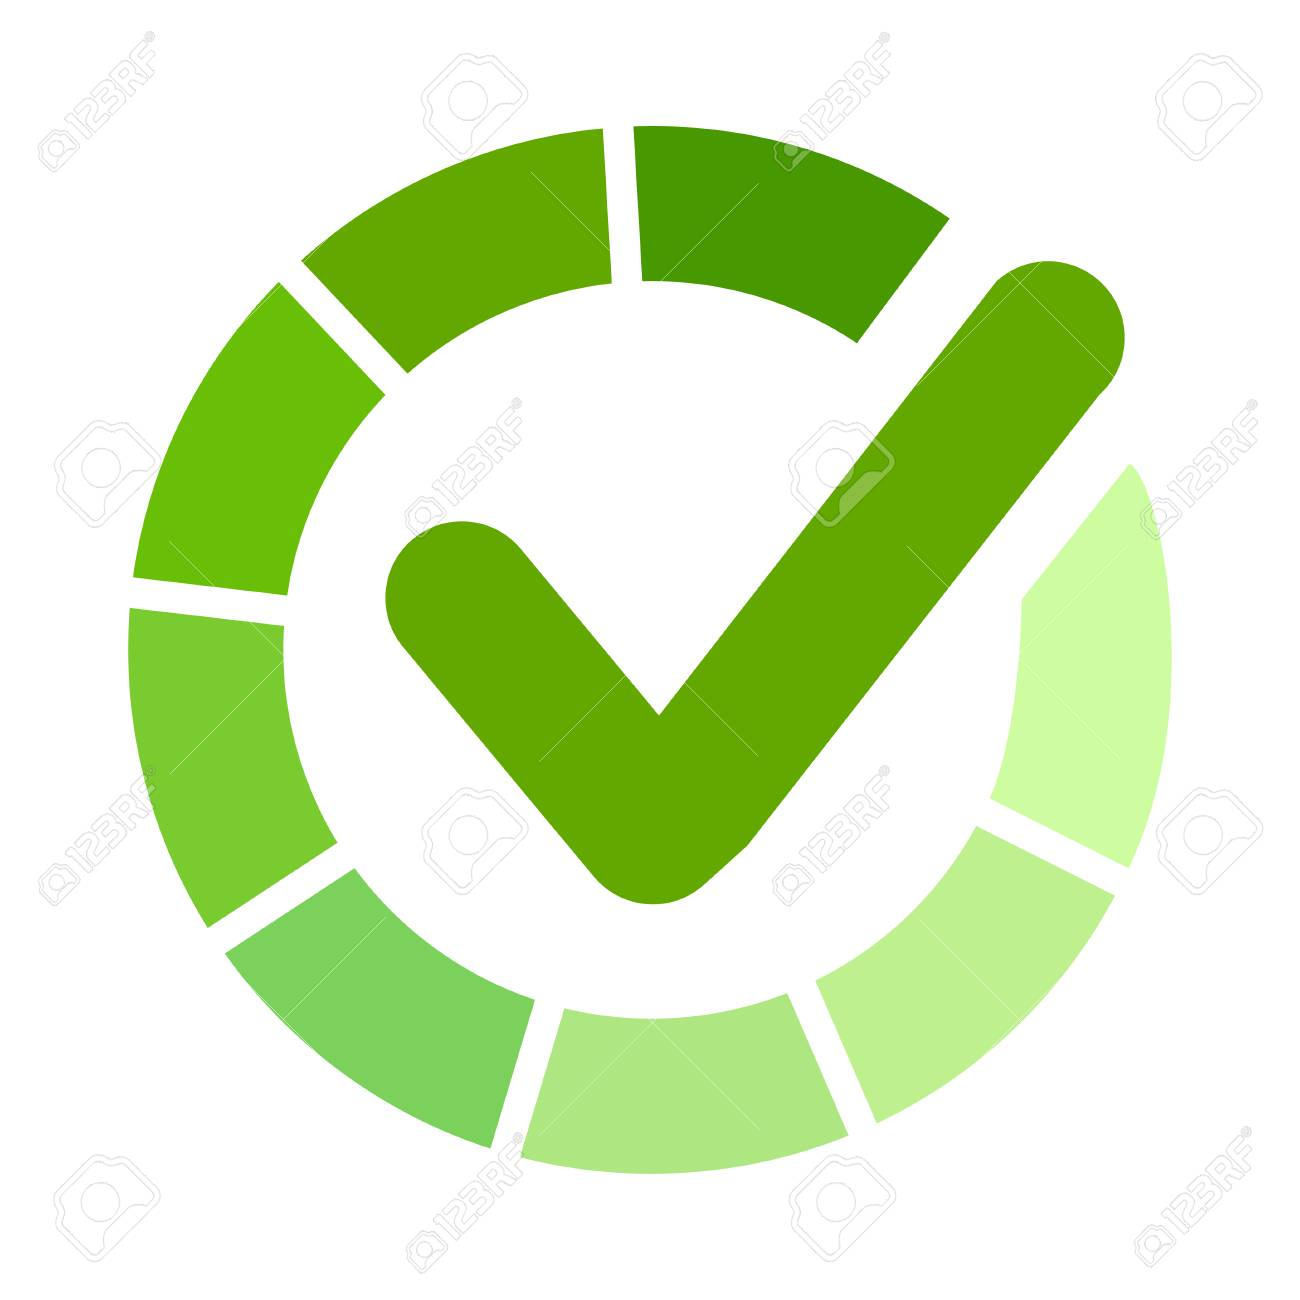 green ñheck mark tick hook signs in circle button for vote yes